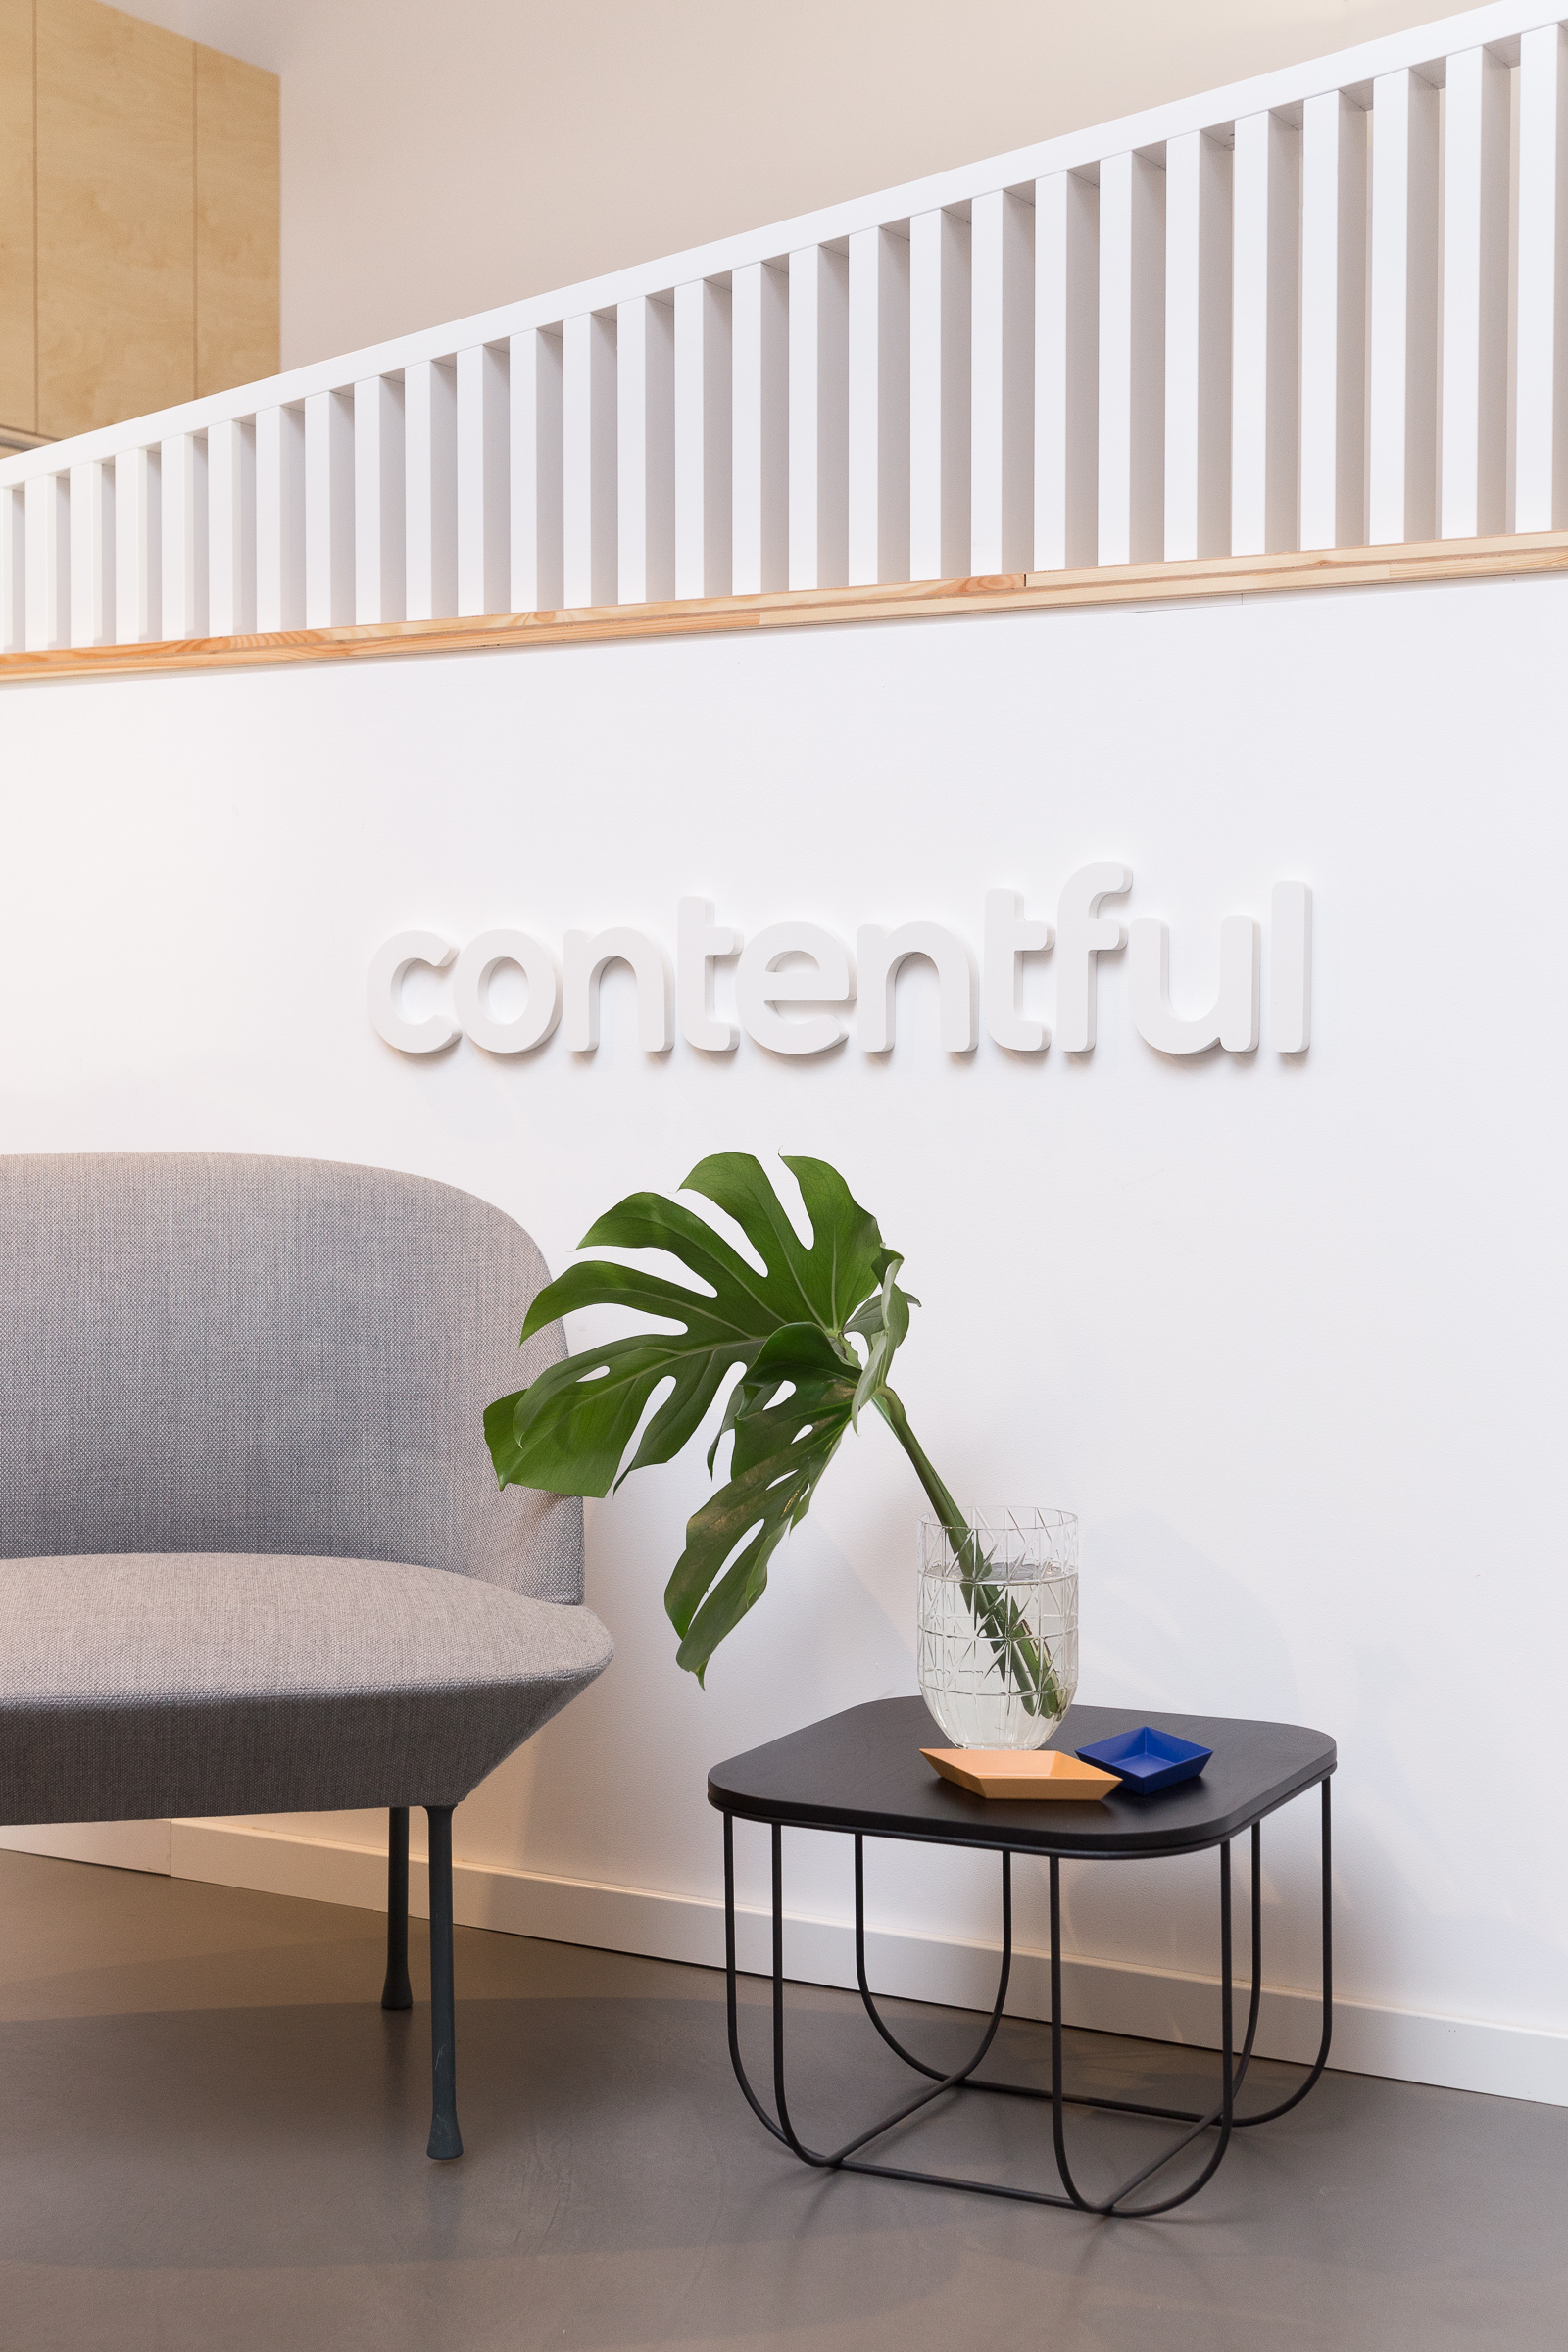 New reception that reflects Contentful's brand.